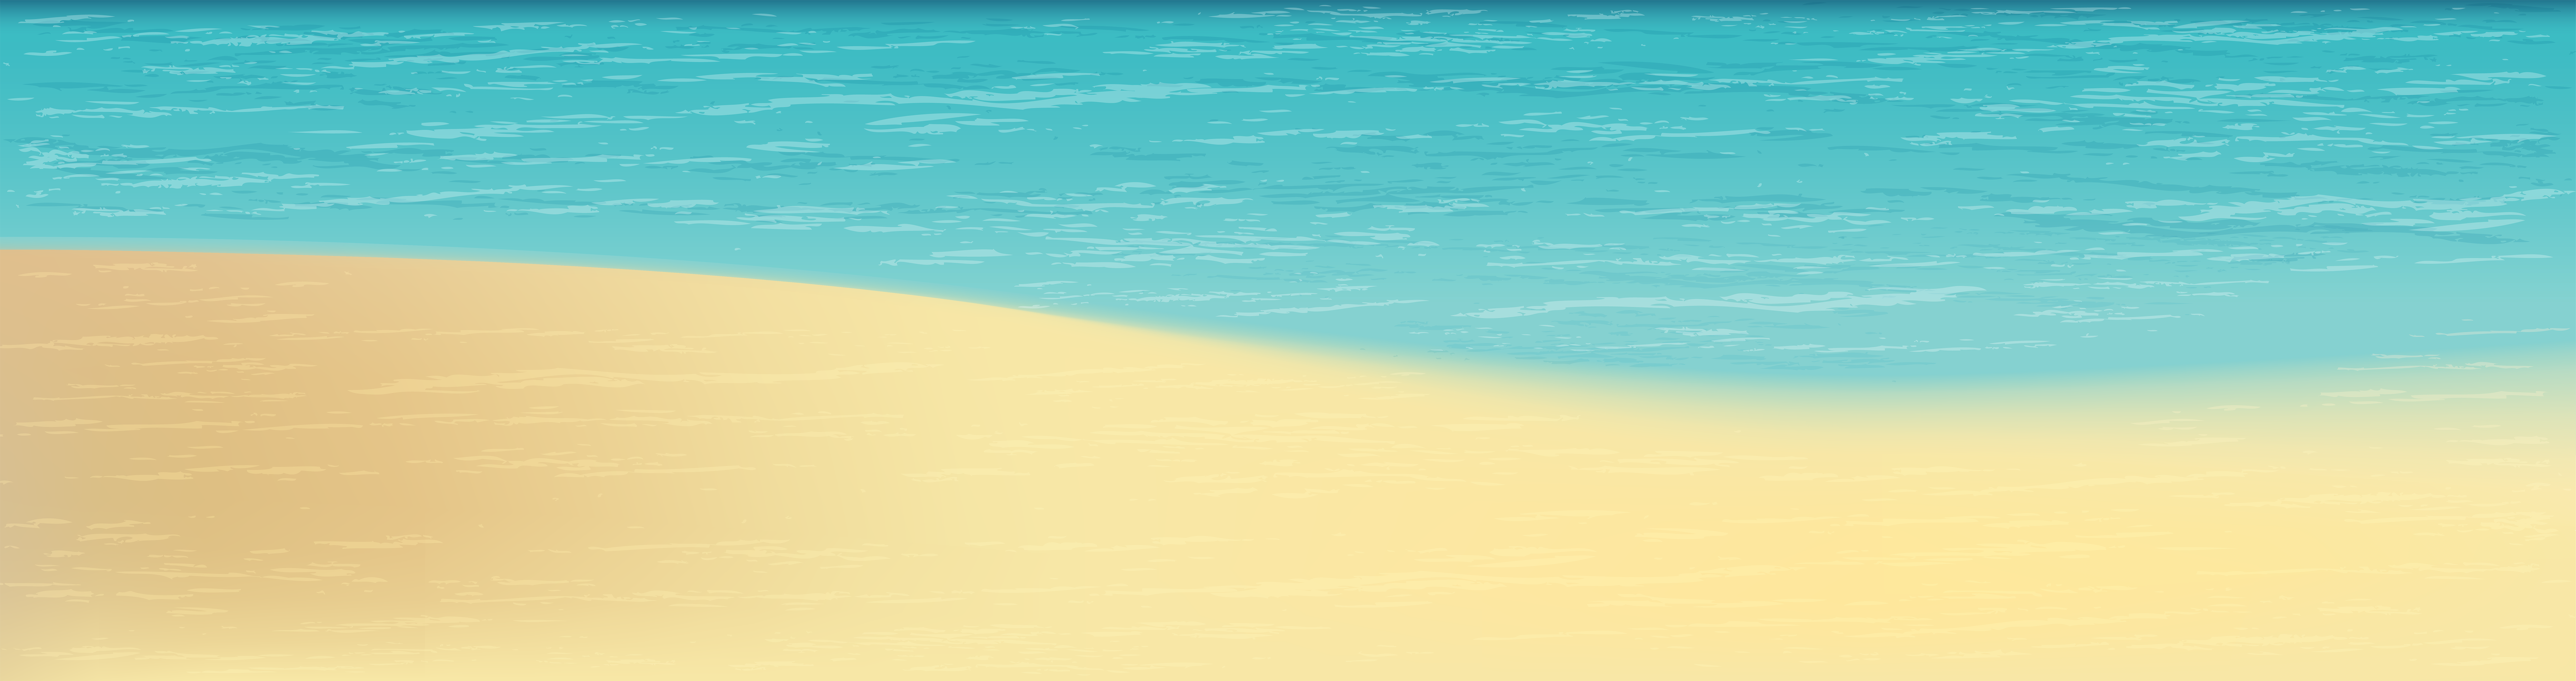 Sea and Sand Clip Art PNG Image.